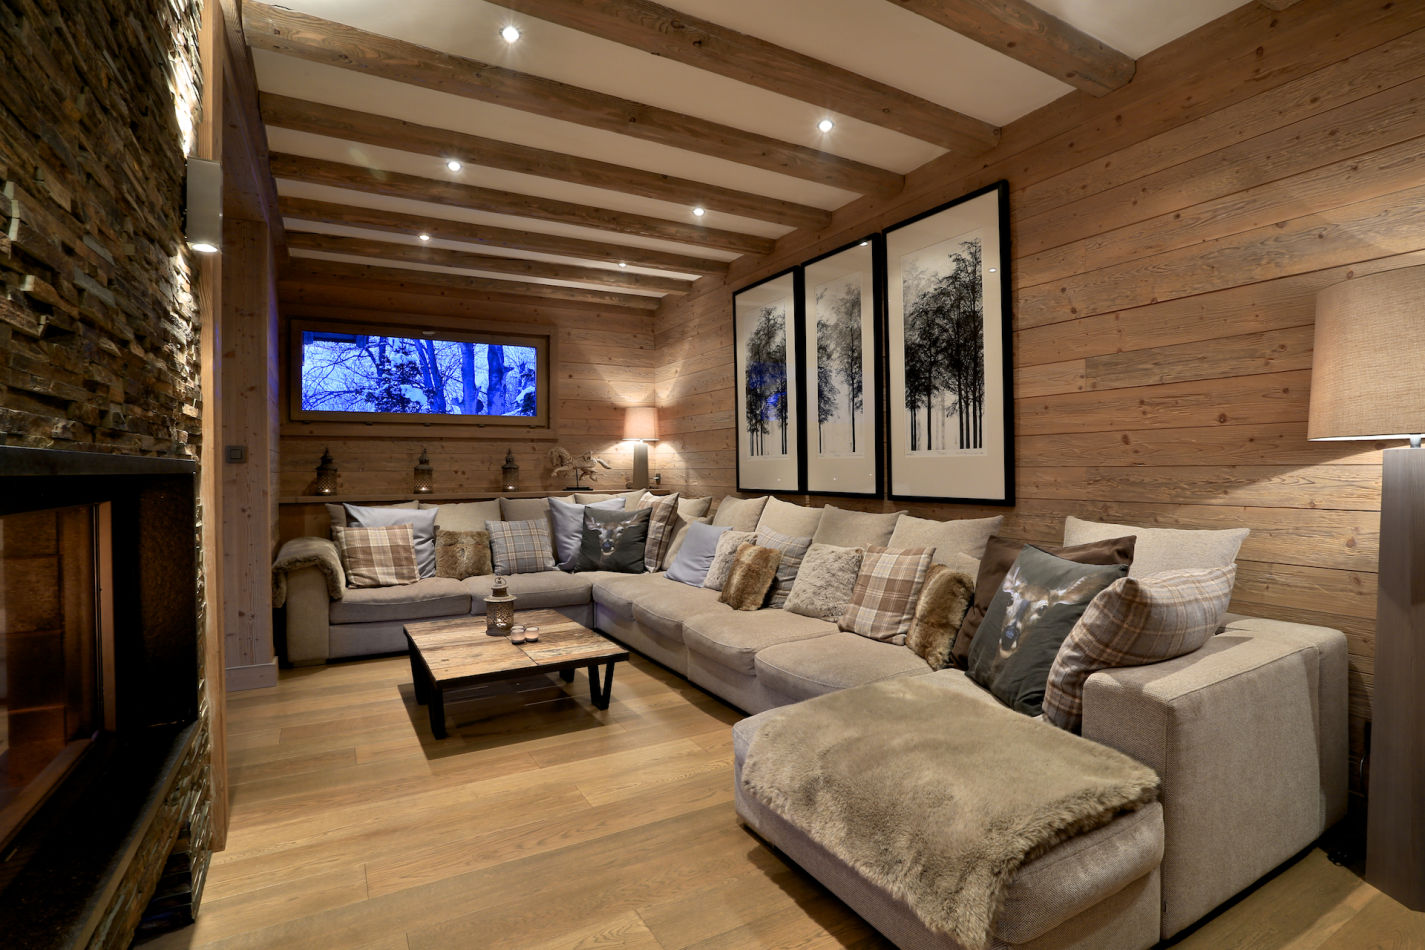 living-room-in-evening-image-125